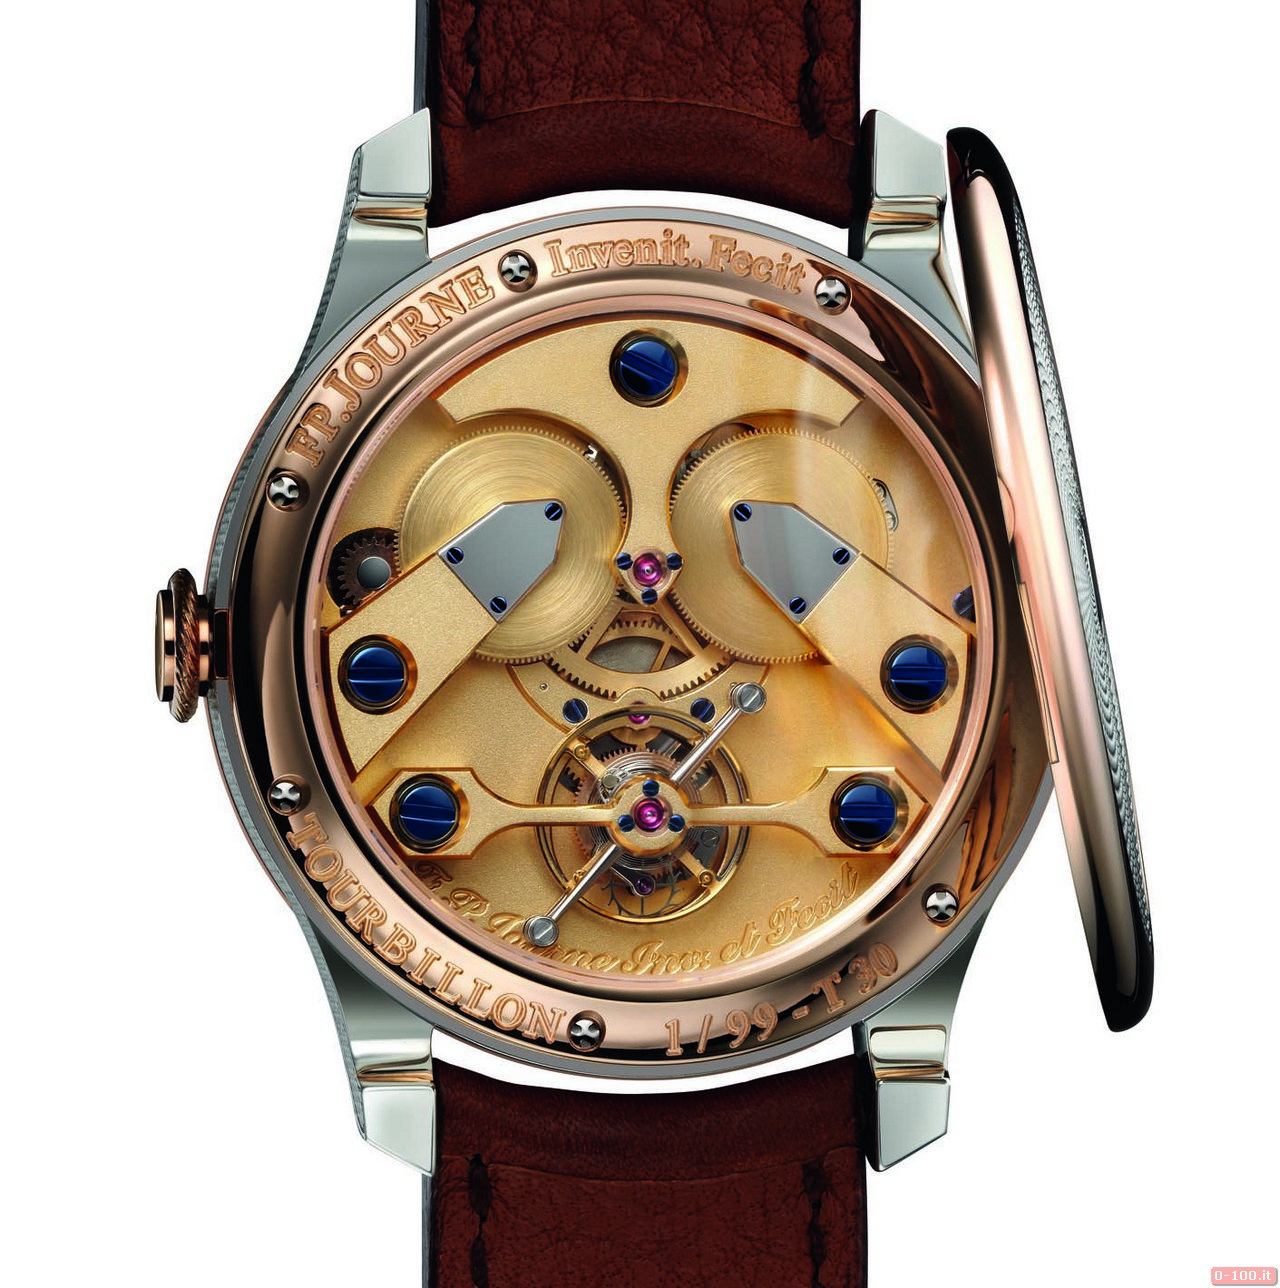 anniversary-edition-2013-of-the-first-pocket-watch-with-tourbillon-by-francois-paul-journe__0-1007